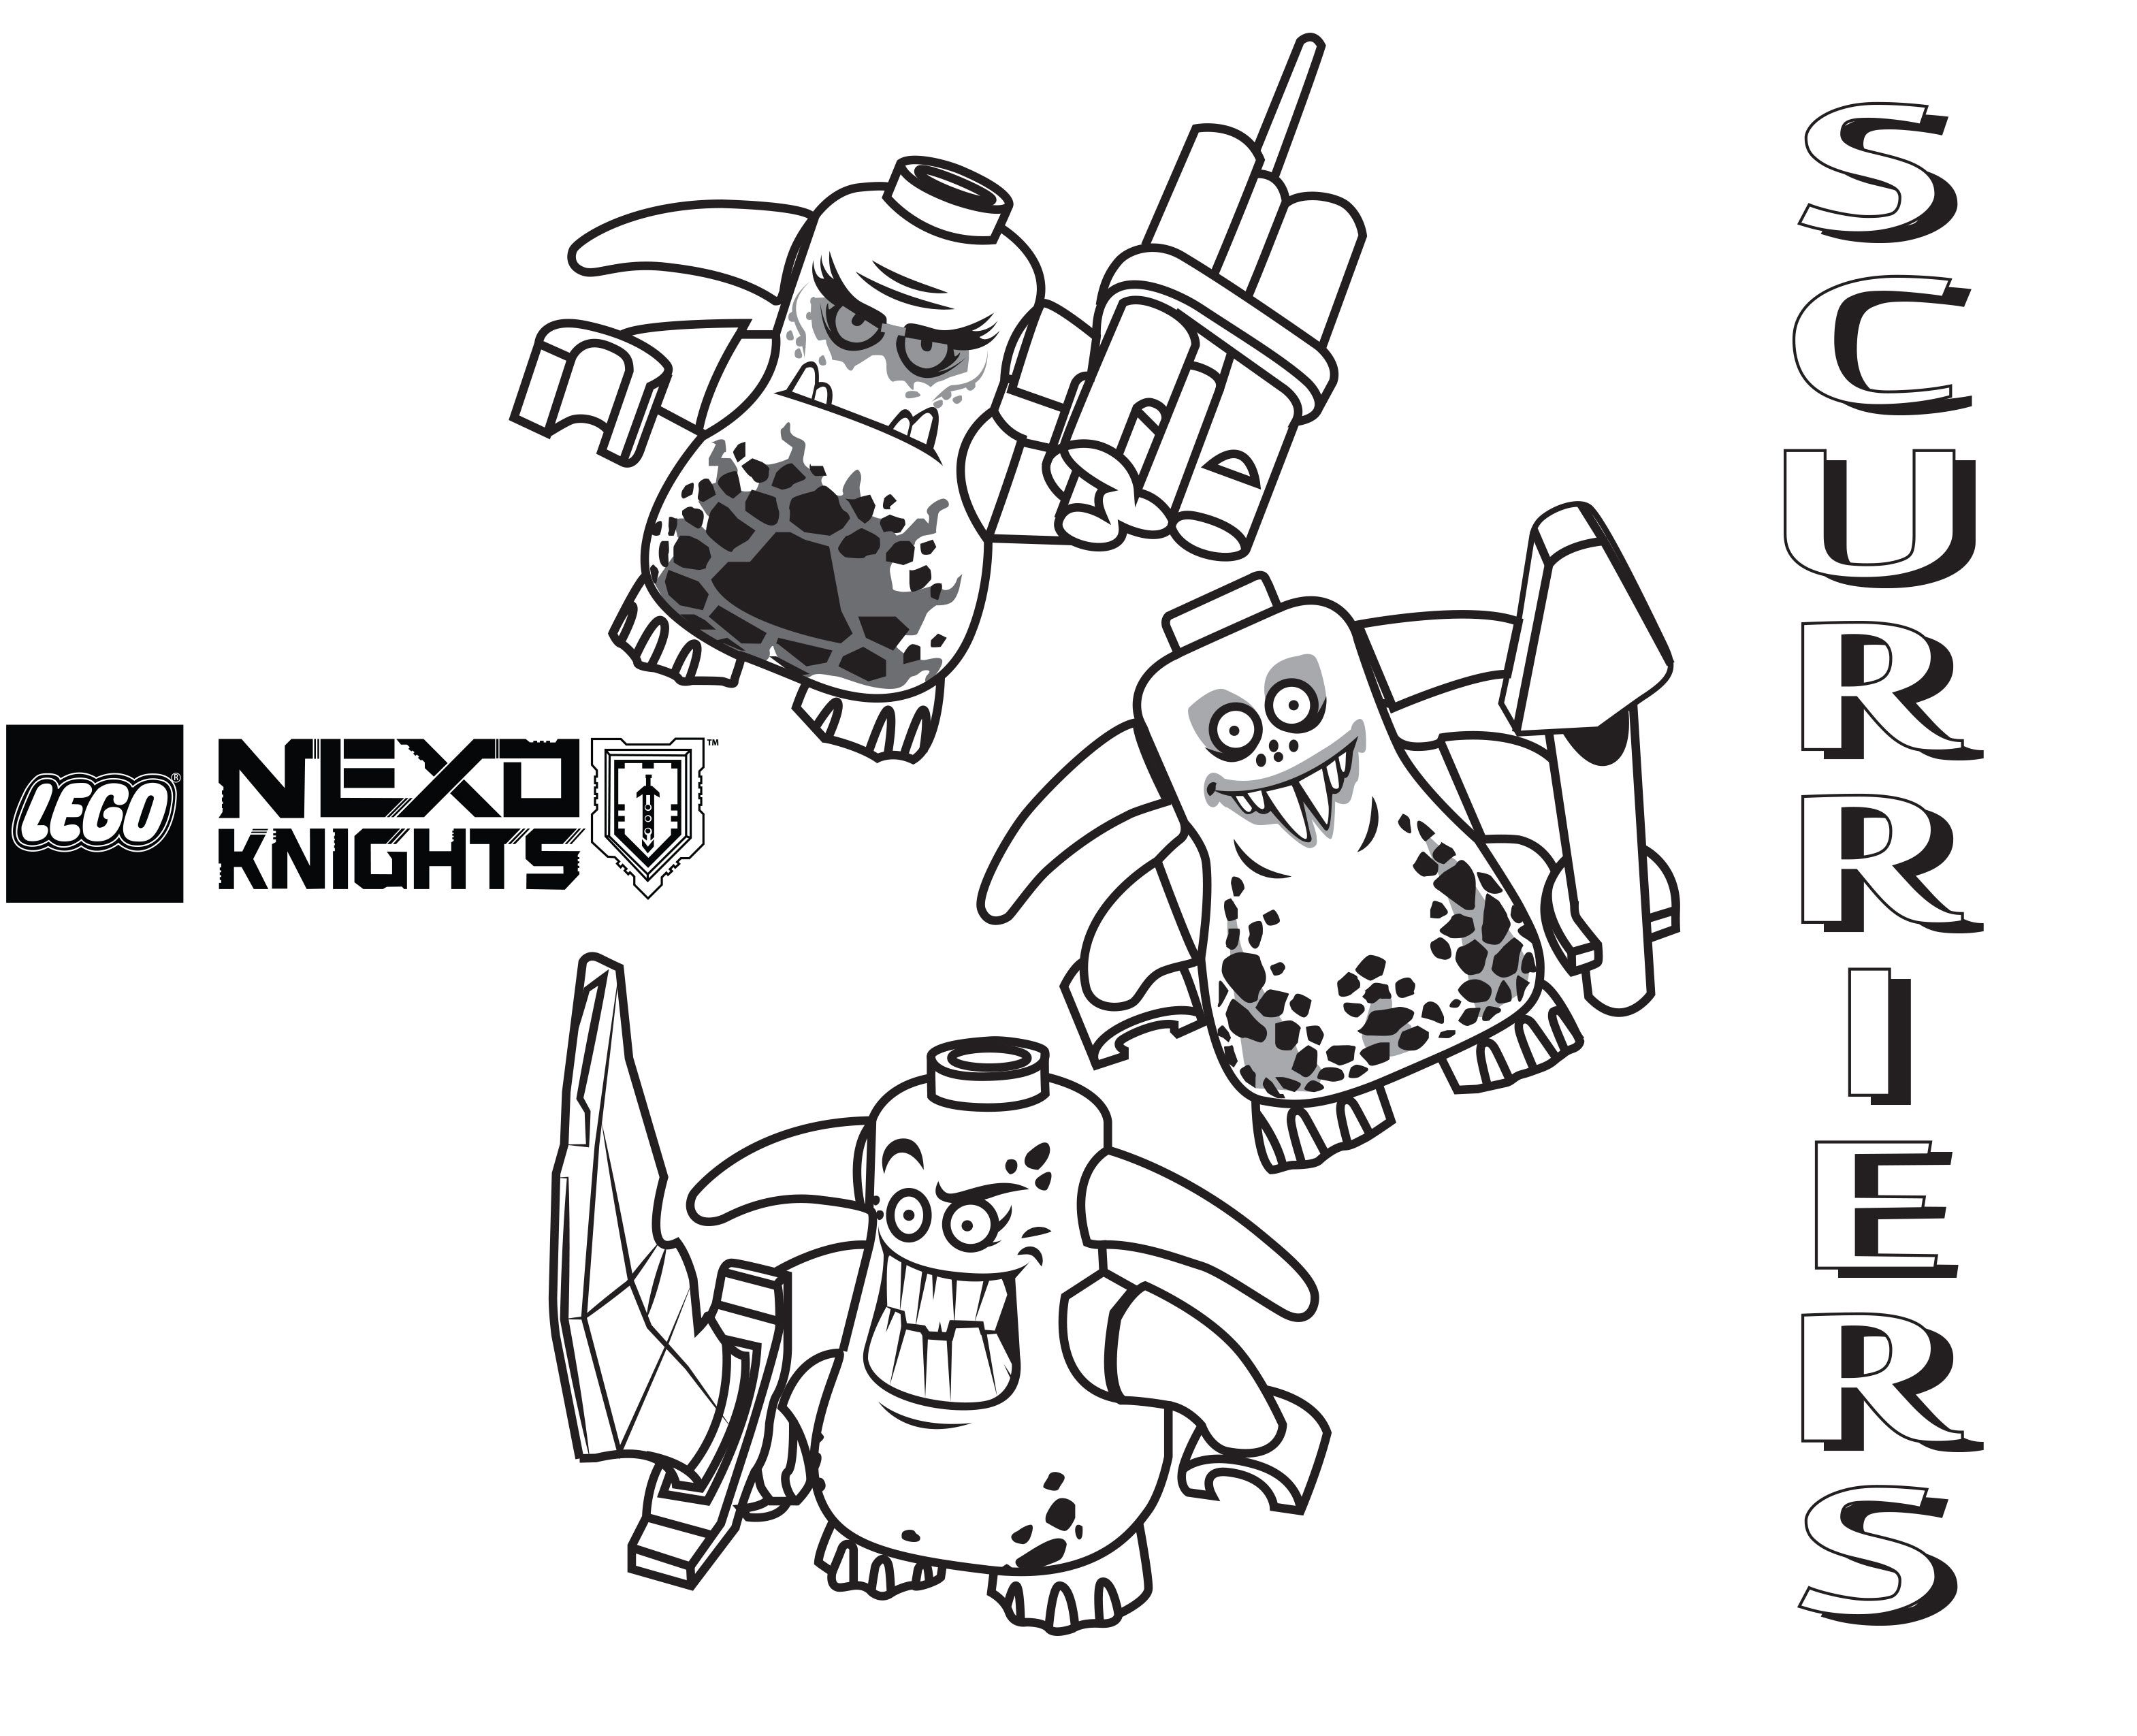 Lego Nexo Knights Clay Ausmalbilder : Lego Nexo Knights Coloring Pages Free Printable Lego Nexo Knights